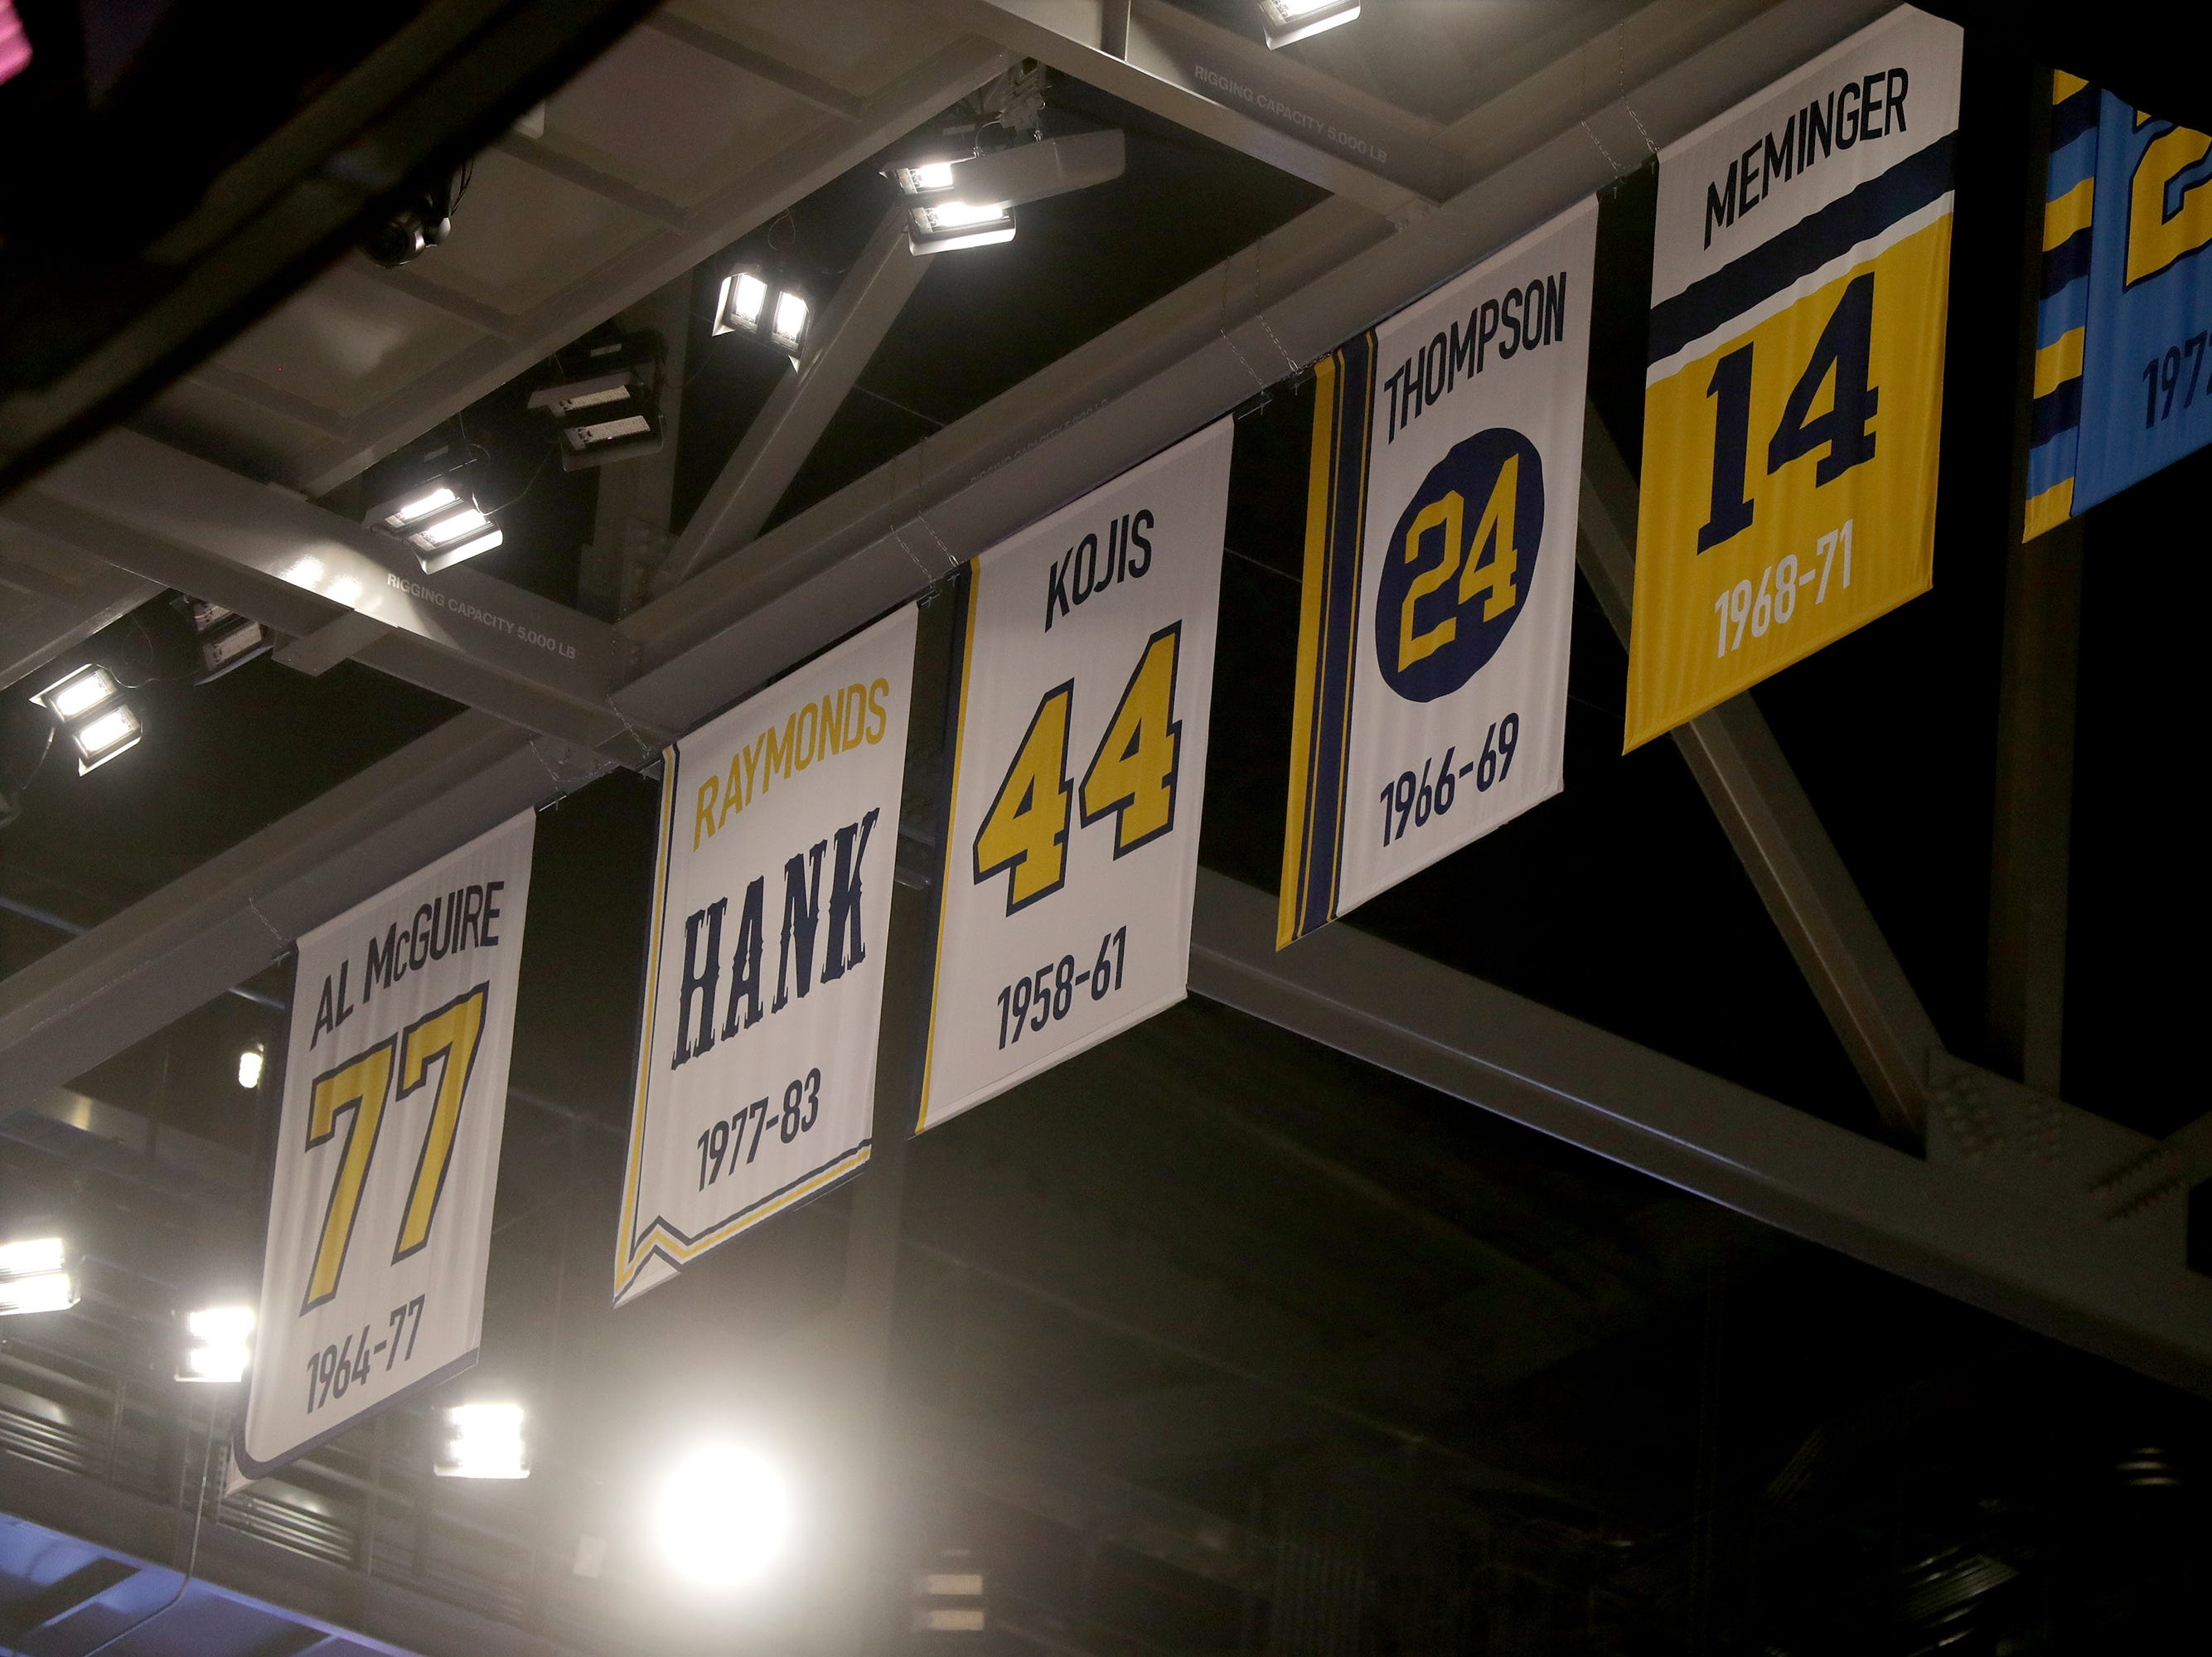 Marquette banners hang from the rafters. The Marquette mens' basketball team locker room is complete at the new Fiserve Forum, the home of the Milwaukee Bucks. Monday, August 27, 2018.  -  Photo by Mike De Sisti / Milwaukee Journal Sentinel